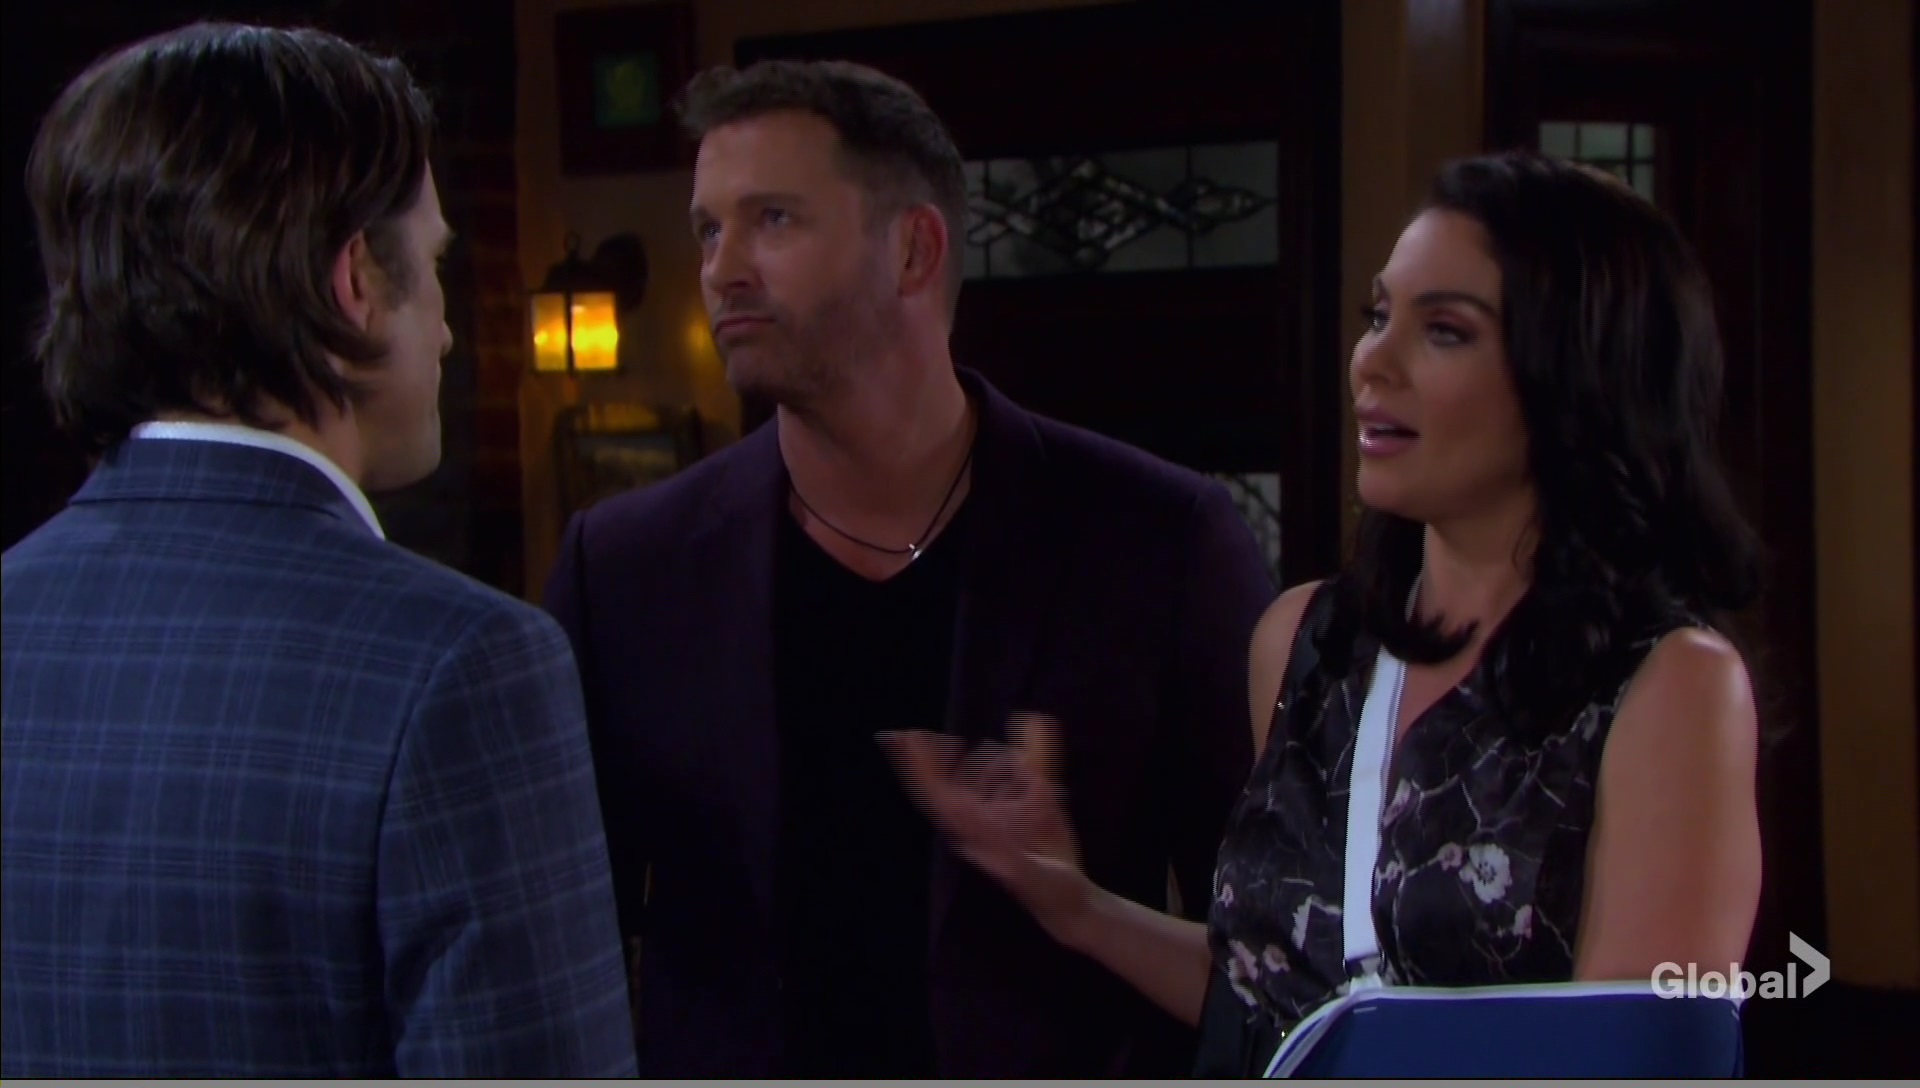 chloe invites philip party days of our lives